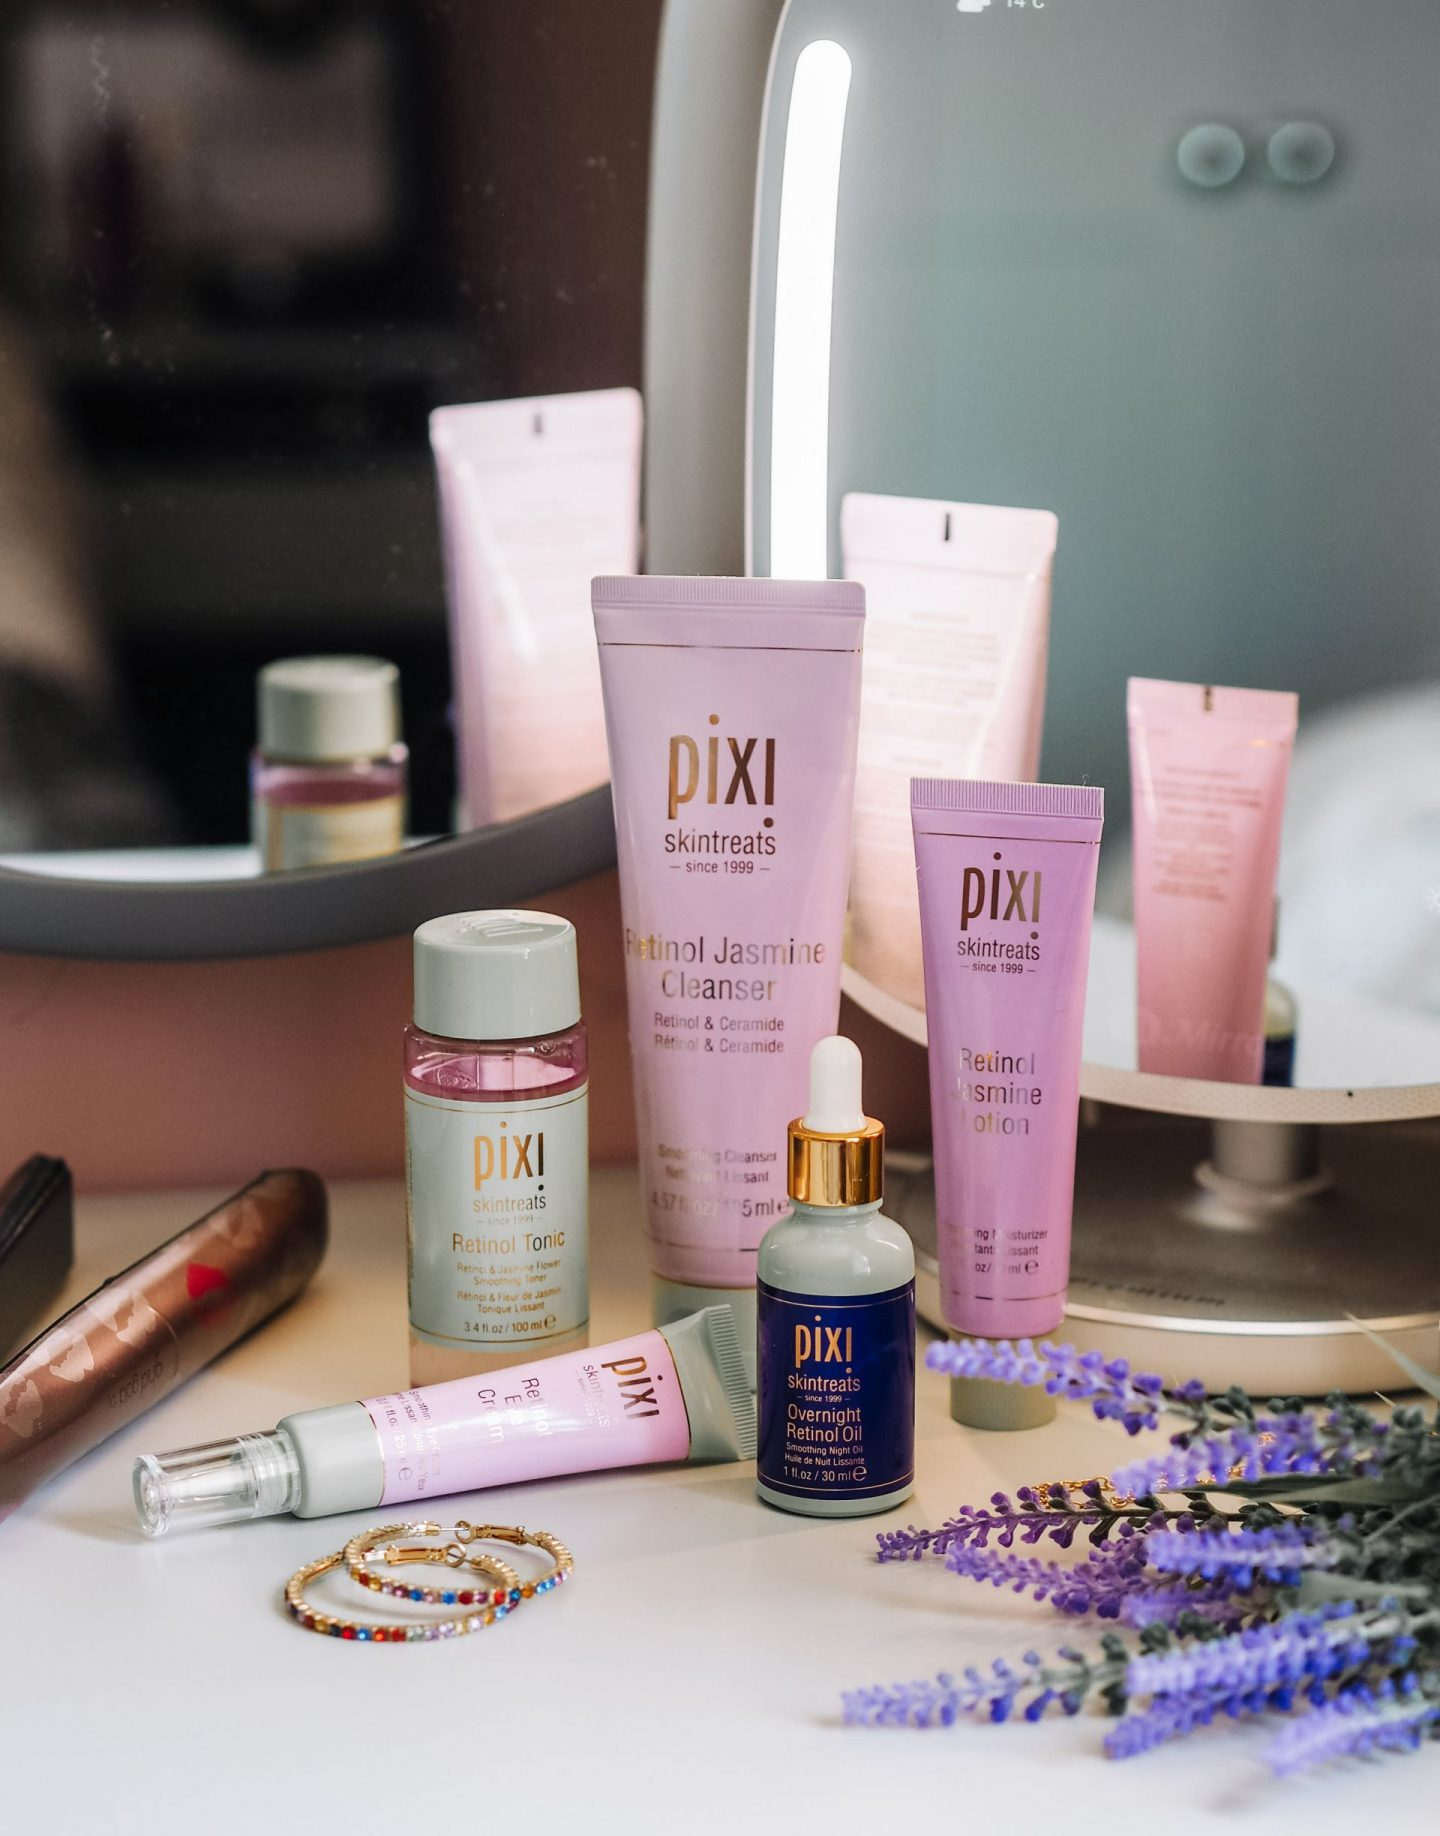 The NEW Pixi Retinol Skincare Collection: Honest Thoughts & What's Worth Trying